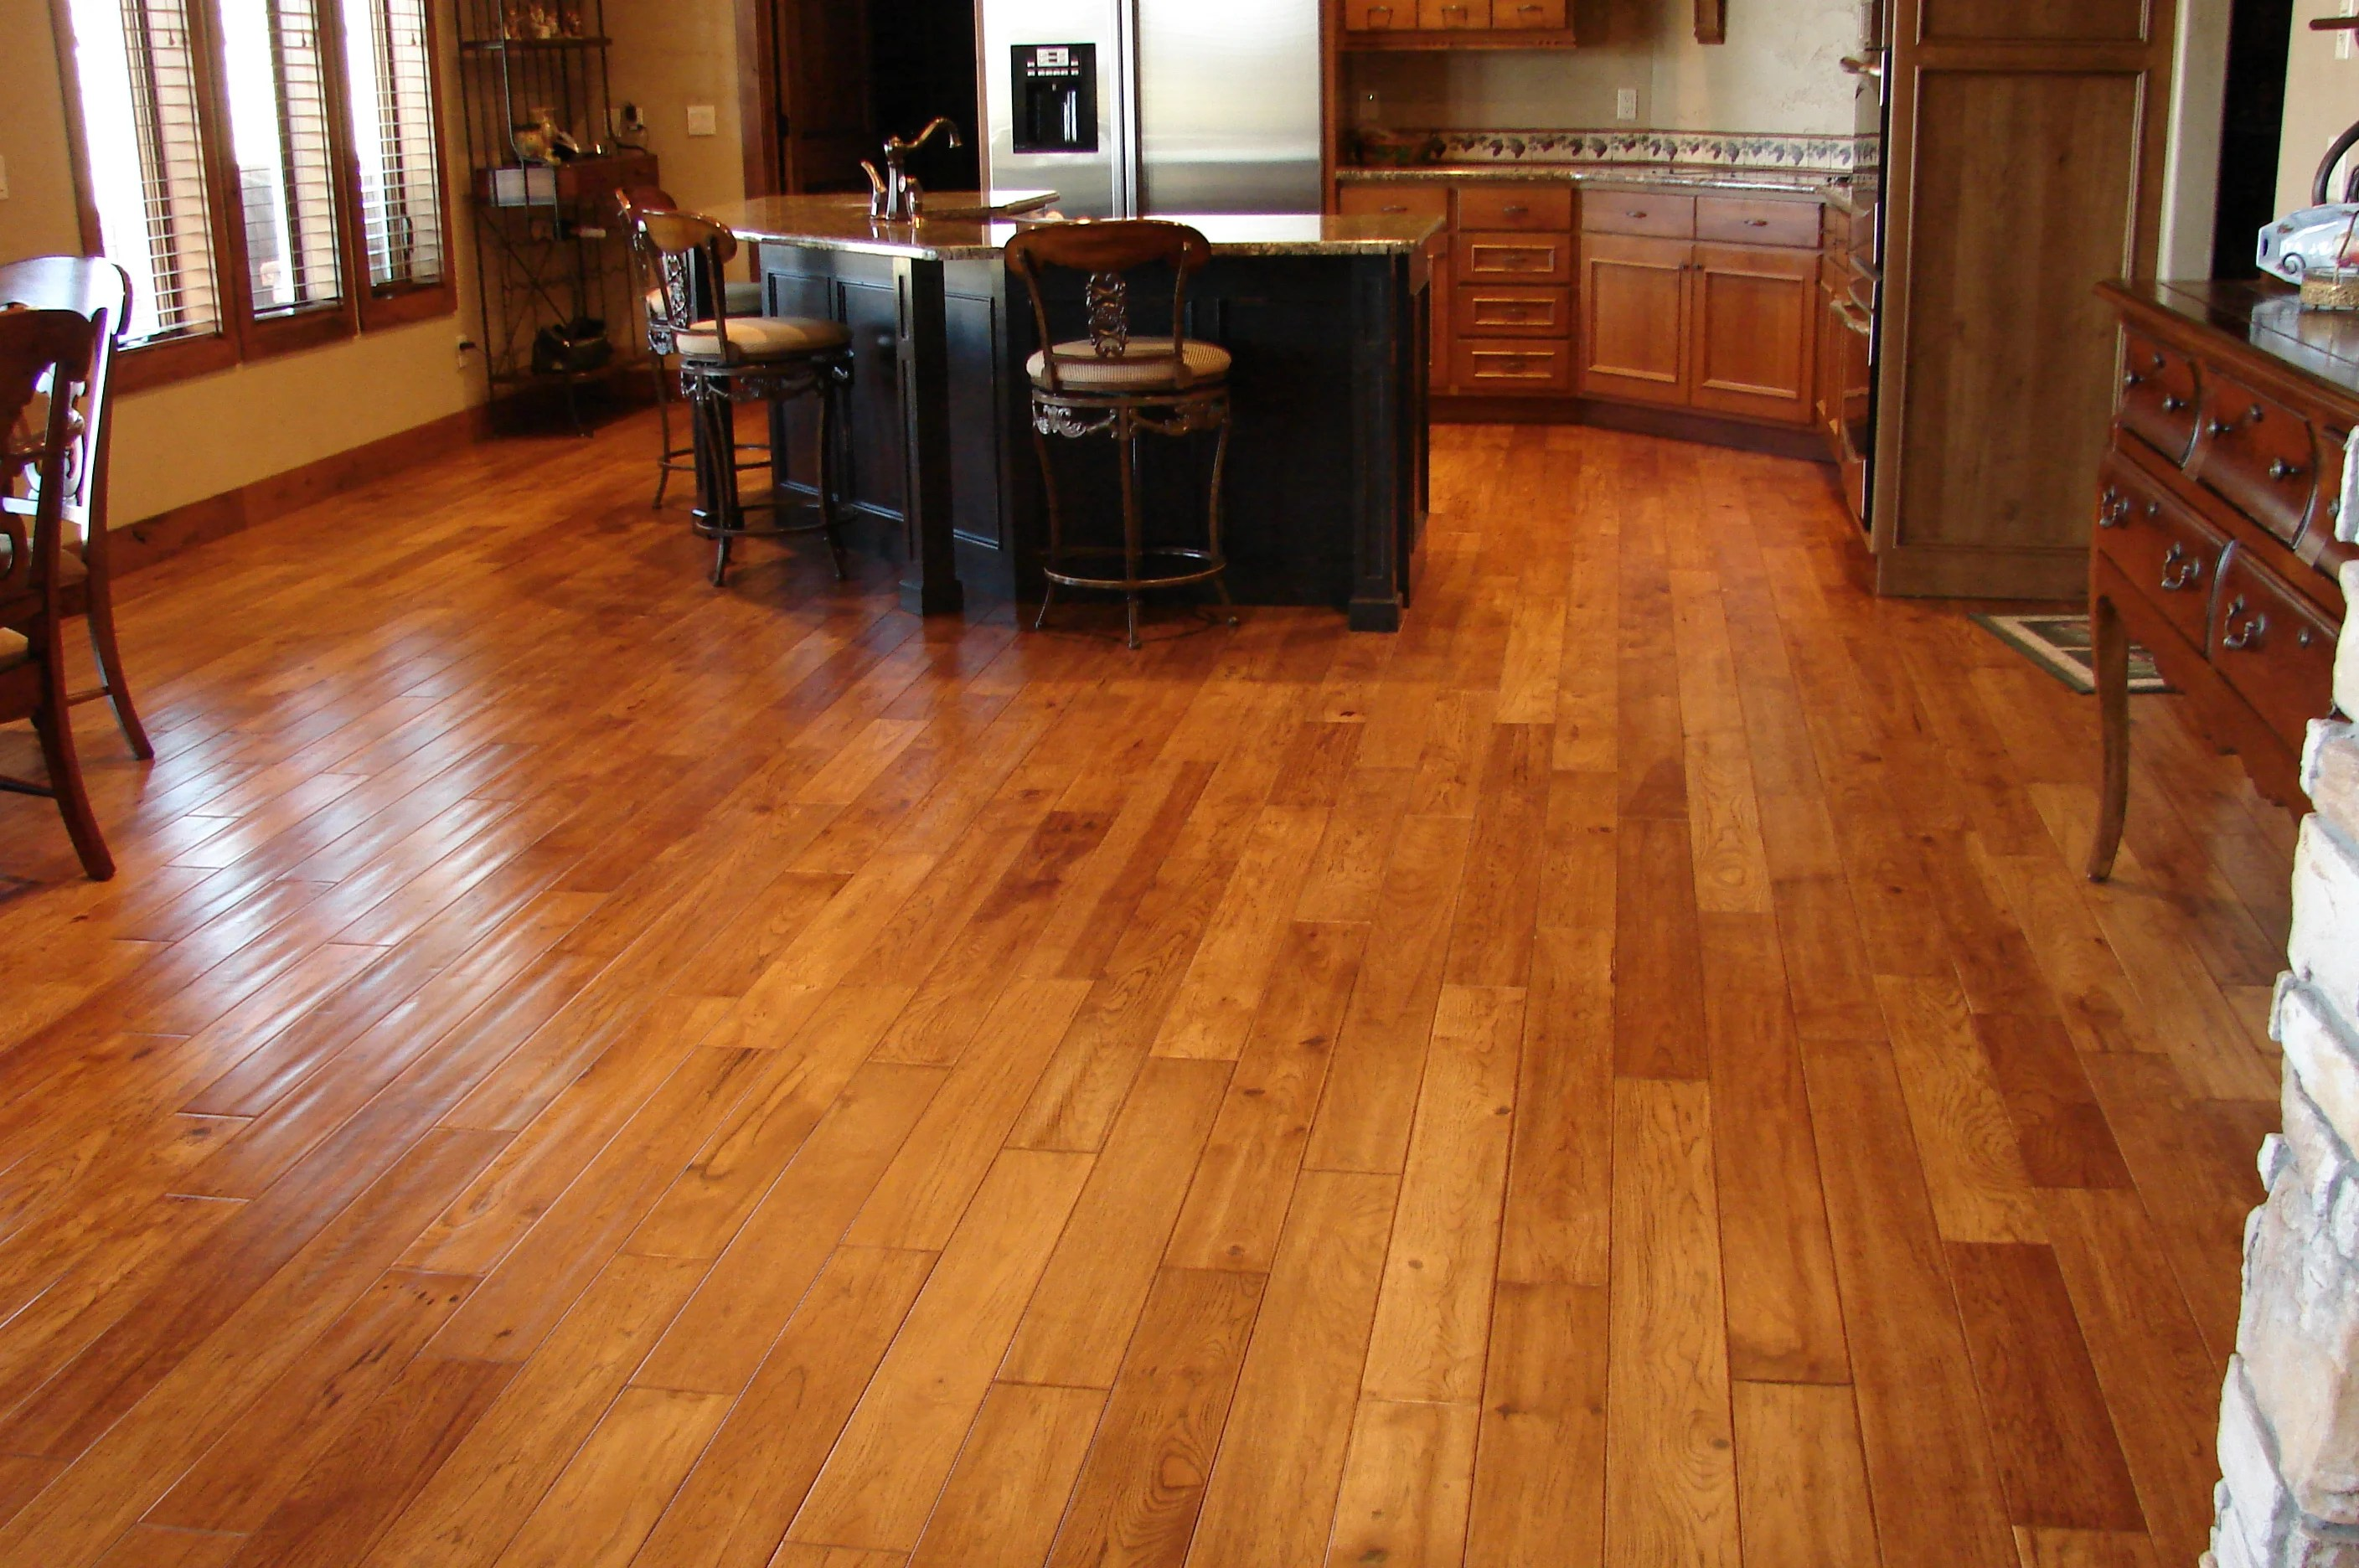 cypress and hickory wood flooring wood floors in kitchen Wood Flooring Trends